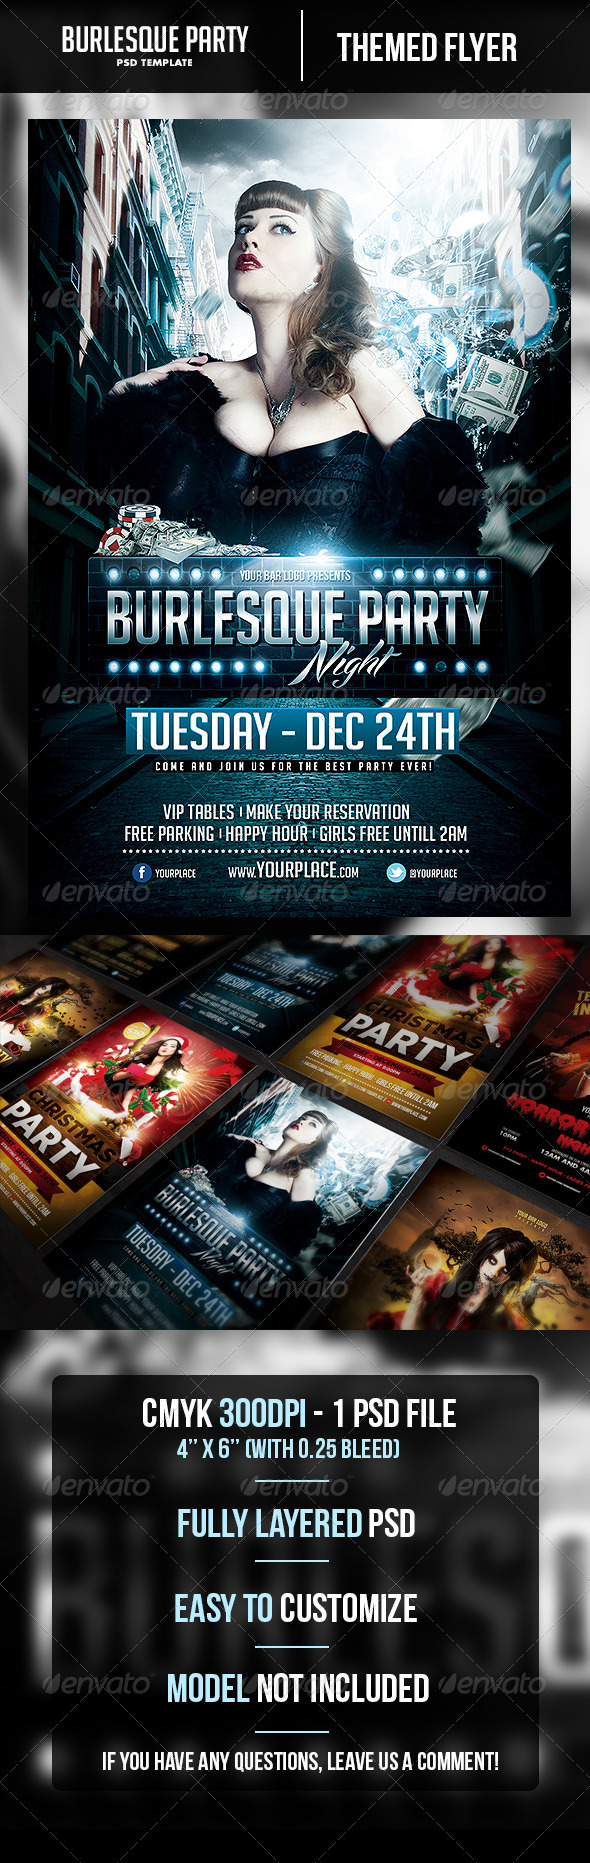 Burlesque Party Flyer Template - Clubs & Parties Events